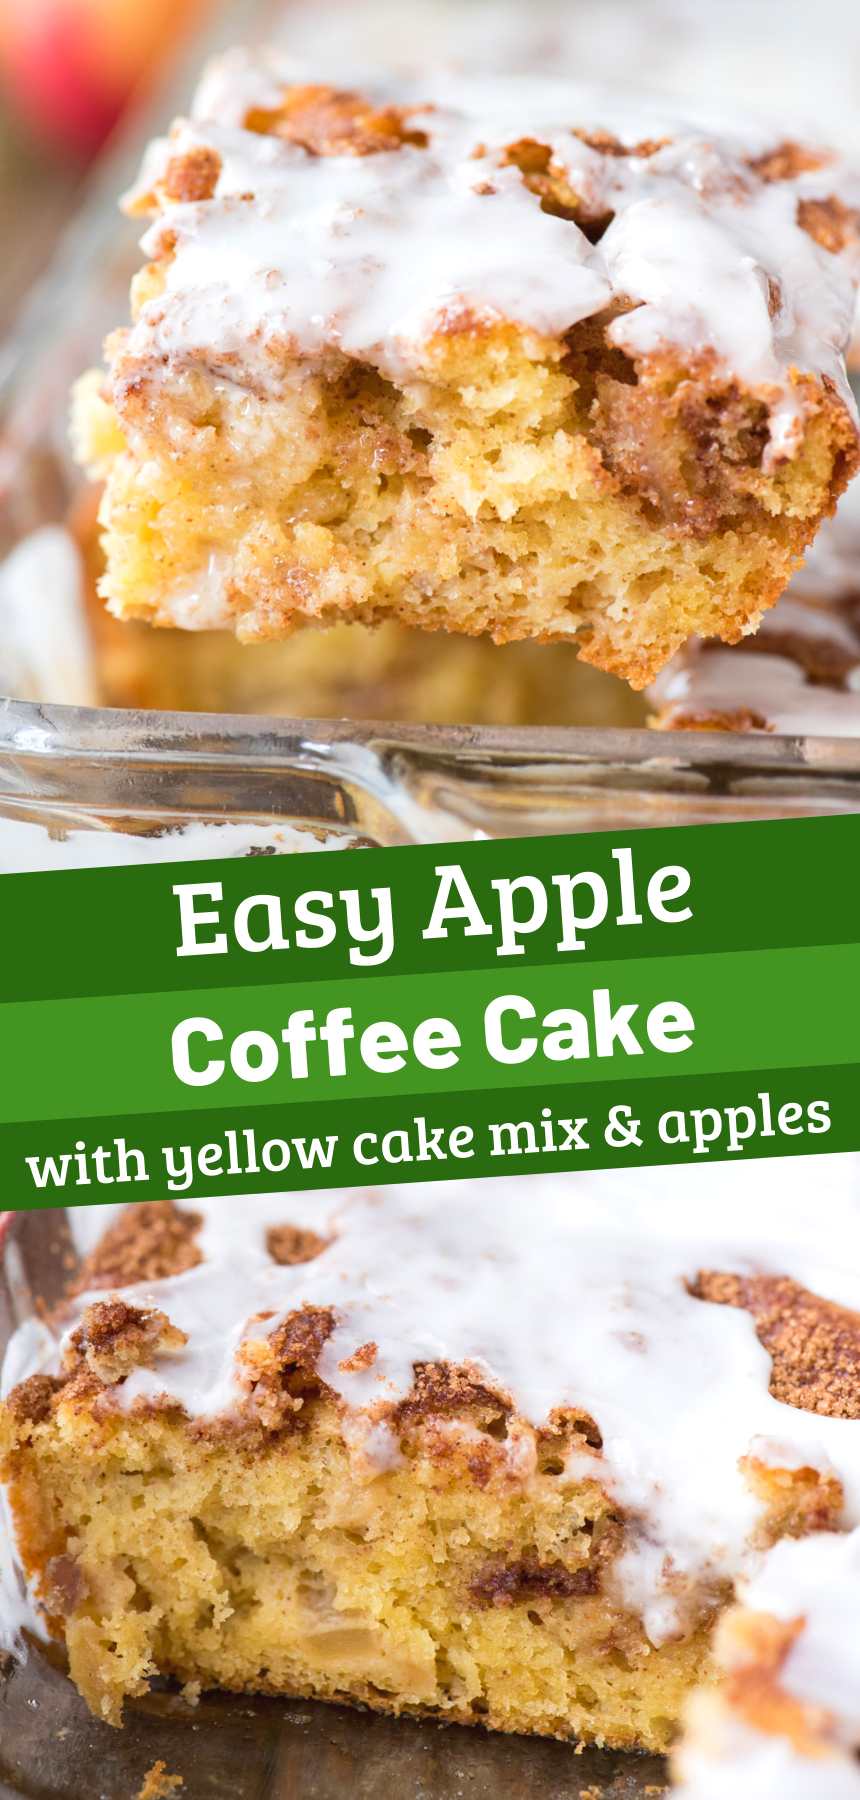 Easy apple coffee cake made with yellow cake mix, fresh